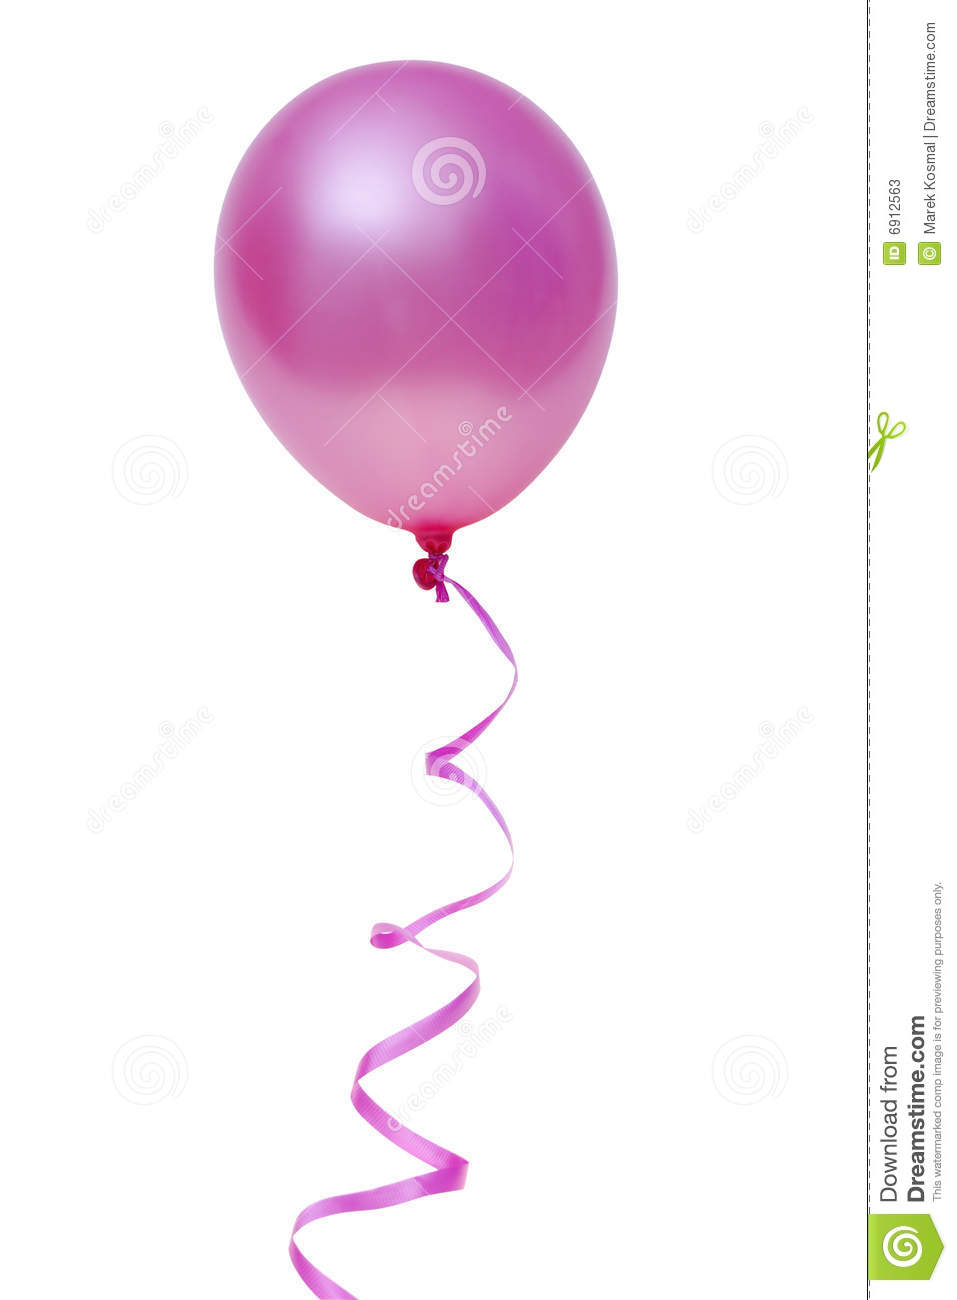 pink ballon stock image image of party  helium  ribbon celebrate clipart images celebration clipart